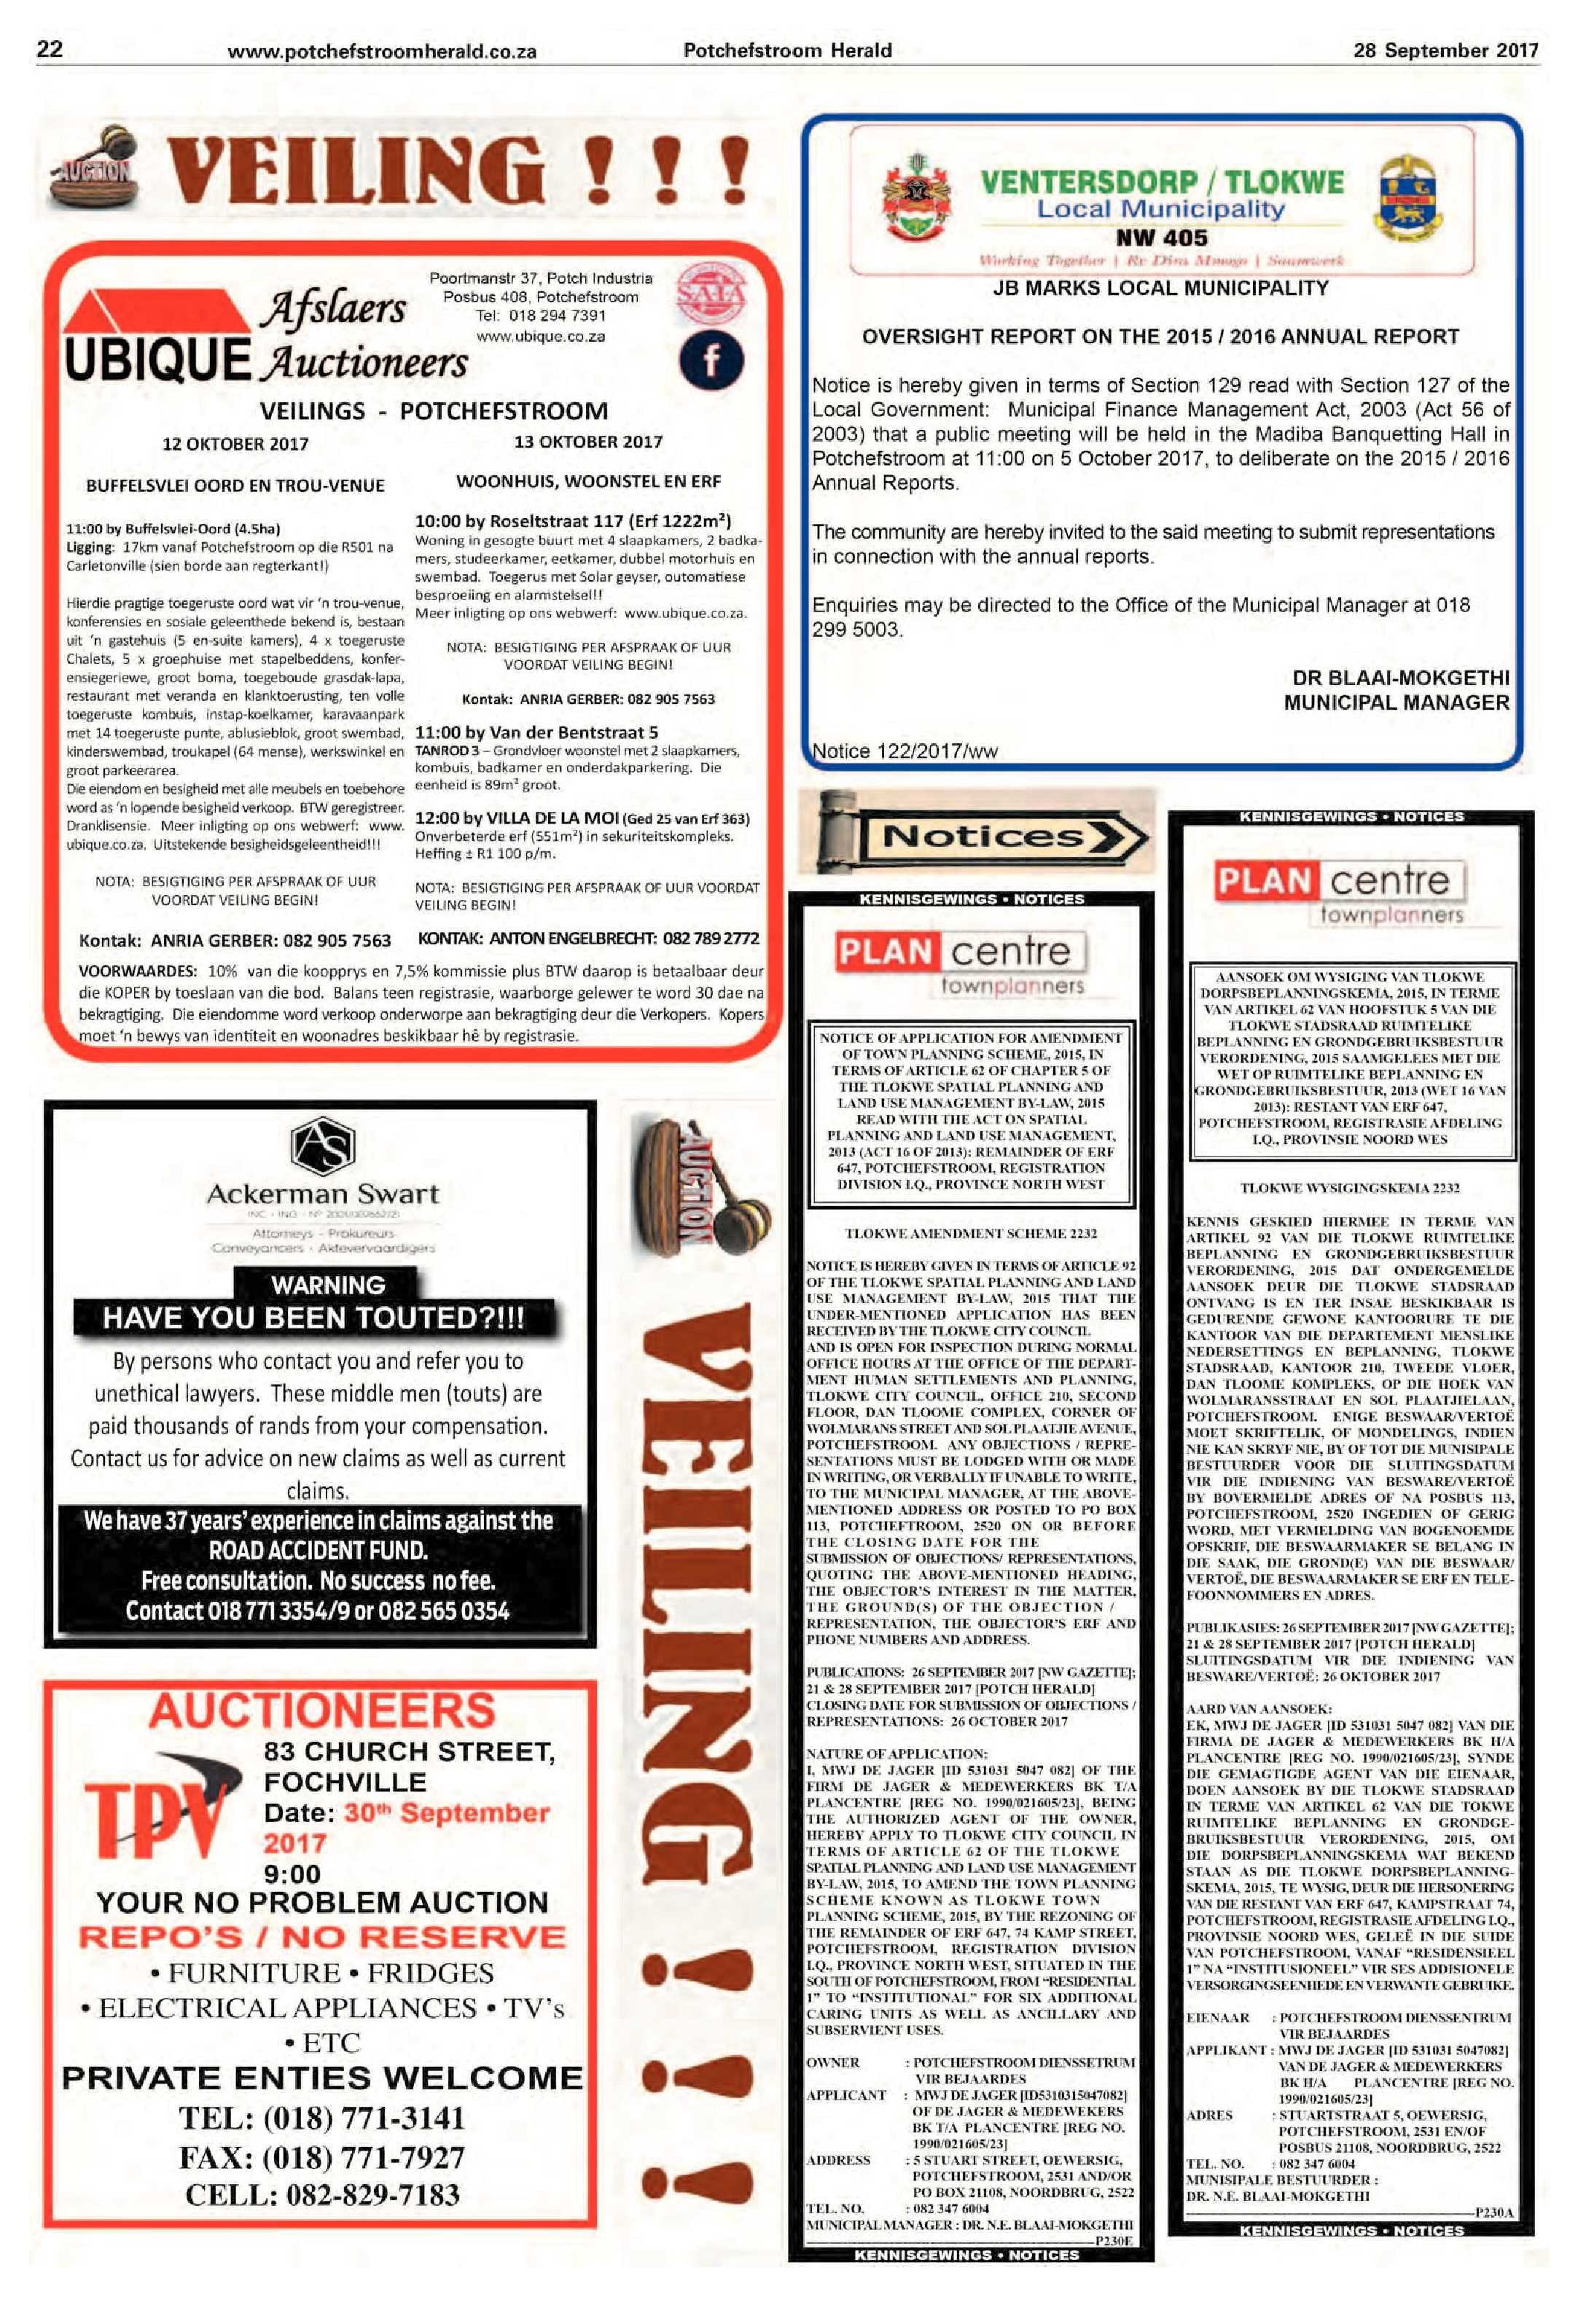 28-september-2017-epapers-page-22